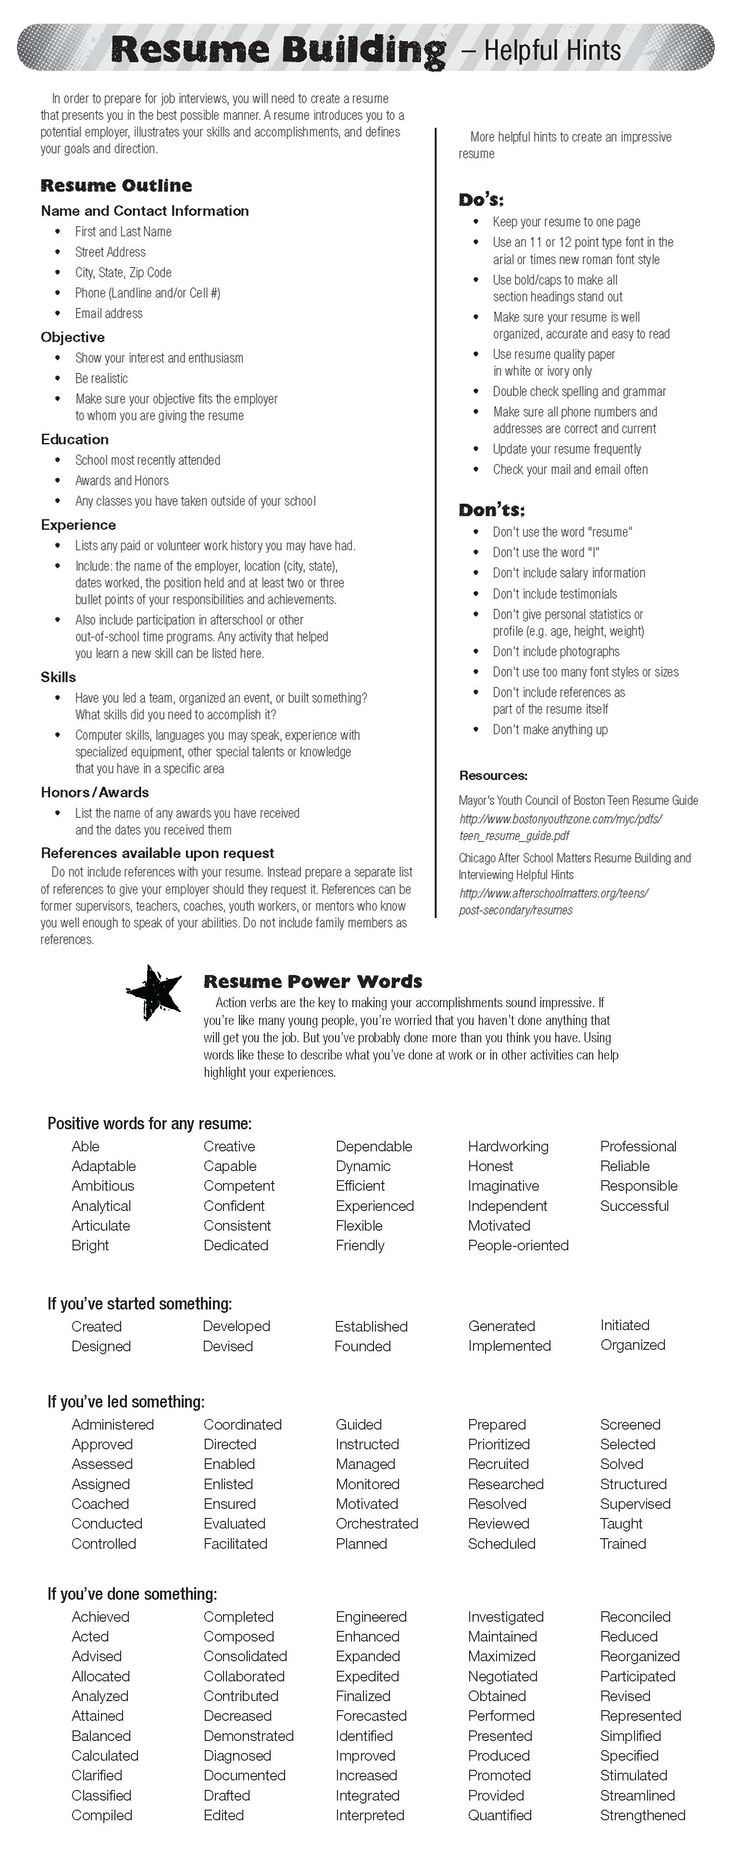 Opposenewapstandardsus  Marvelous  Ideas About Resume On Pinterest  Cv Format Resume Cv And  With Foxy  Ideas About Resume On Pinterest  Cv Format Resume Cv And Resume Templates With Attractive How To Write A Skills Based Resume Also Photography Resumes In Addition Real Estate Administrative Assistant Resume And Waitress Resume Examples As Well As Resumes Cover Letters Additionally Upload A Resume From Pinterestcom With Opposenewapstandardsus  Foxy  Ideas About Resume On Pinterest  Cv Format Resume Cv And  With Attractive  Ideas About Resume On Pinterest  Cv Format Resume Cv And Resume Templates And Marvelous How To Write A Skills Based Resume Also Photography Resumes In Addition Real Estate Administrative Assistant Resume From Pinterestcom